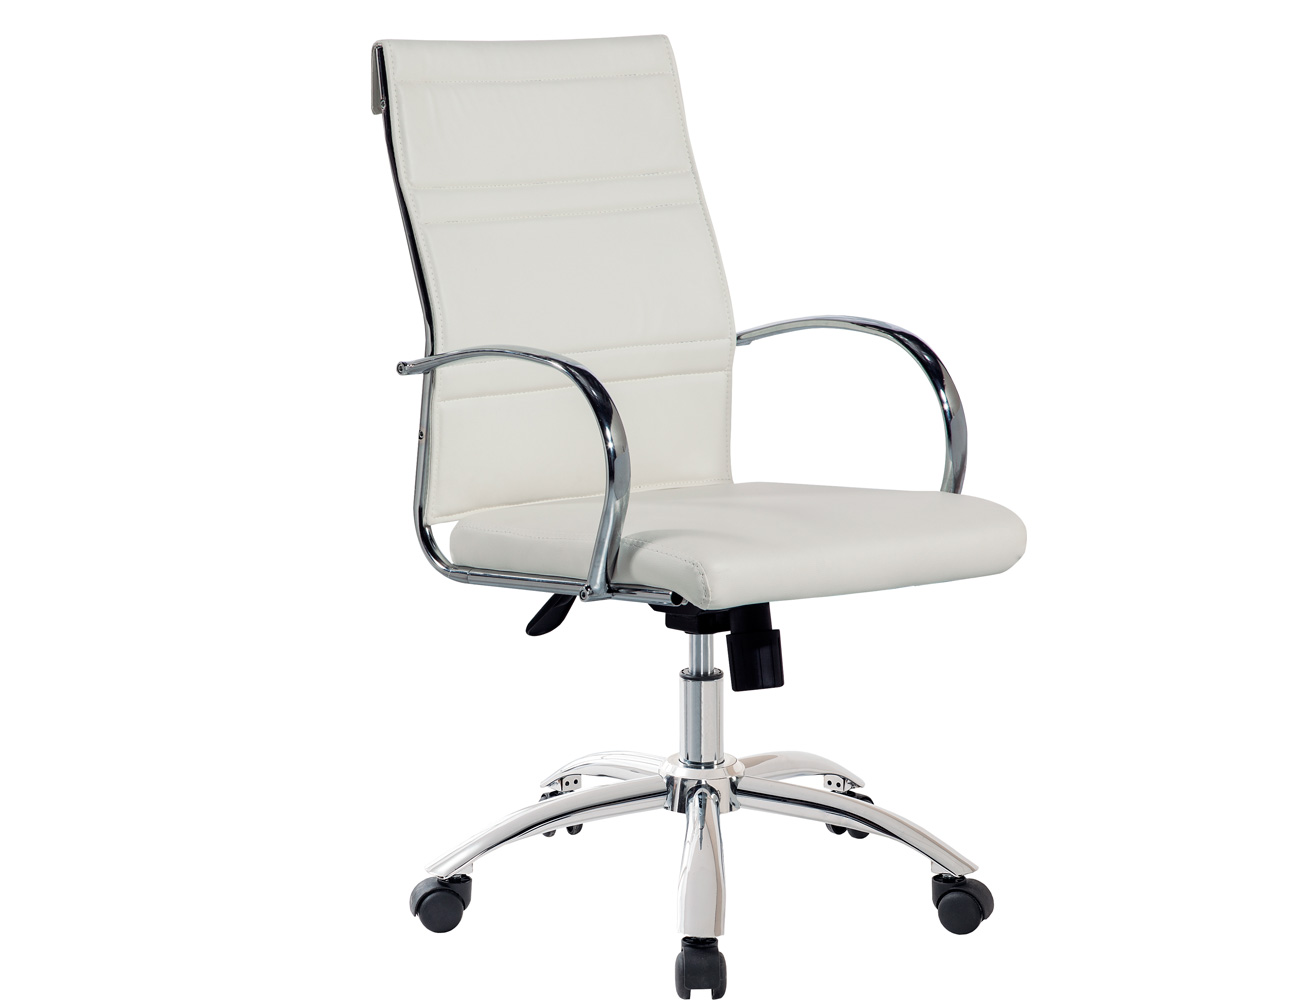 Silla Escritorio Blanca Good Silla De Escritorio Pc Gamer